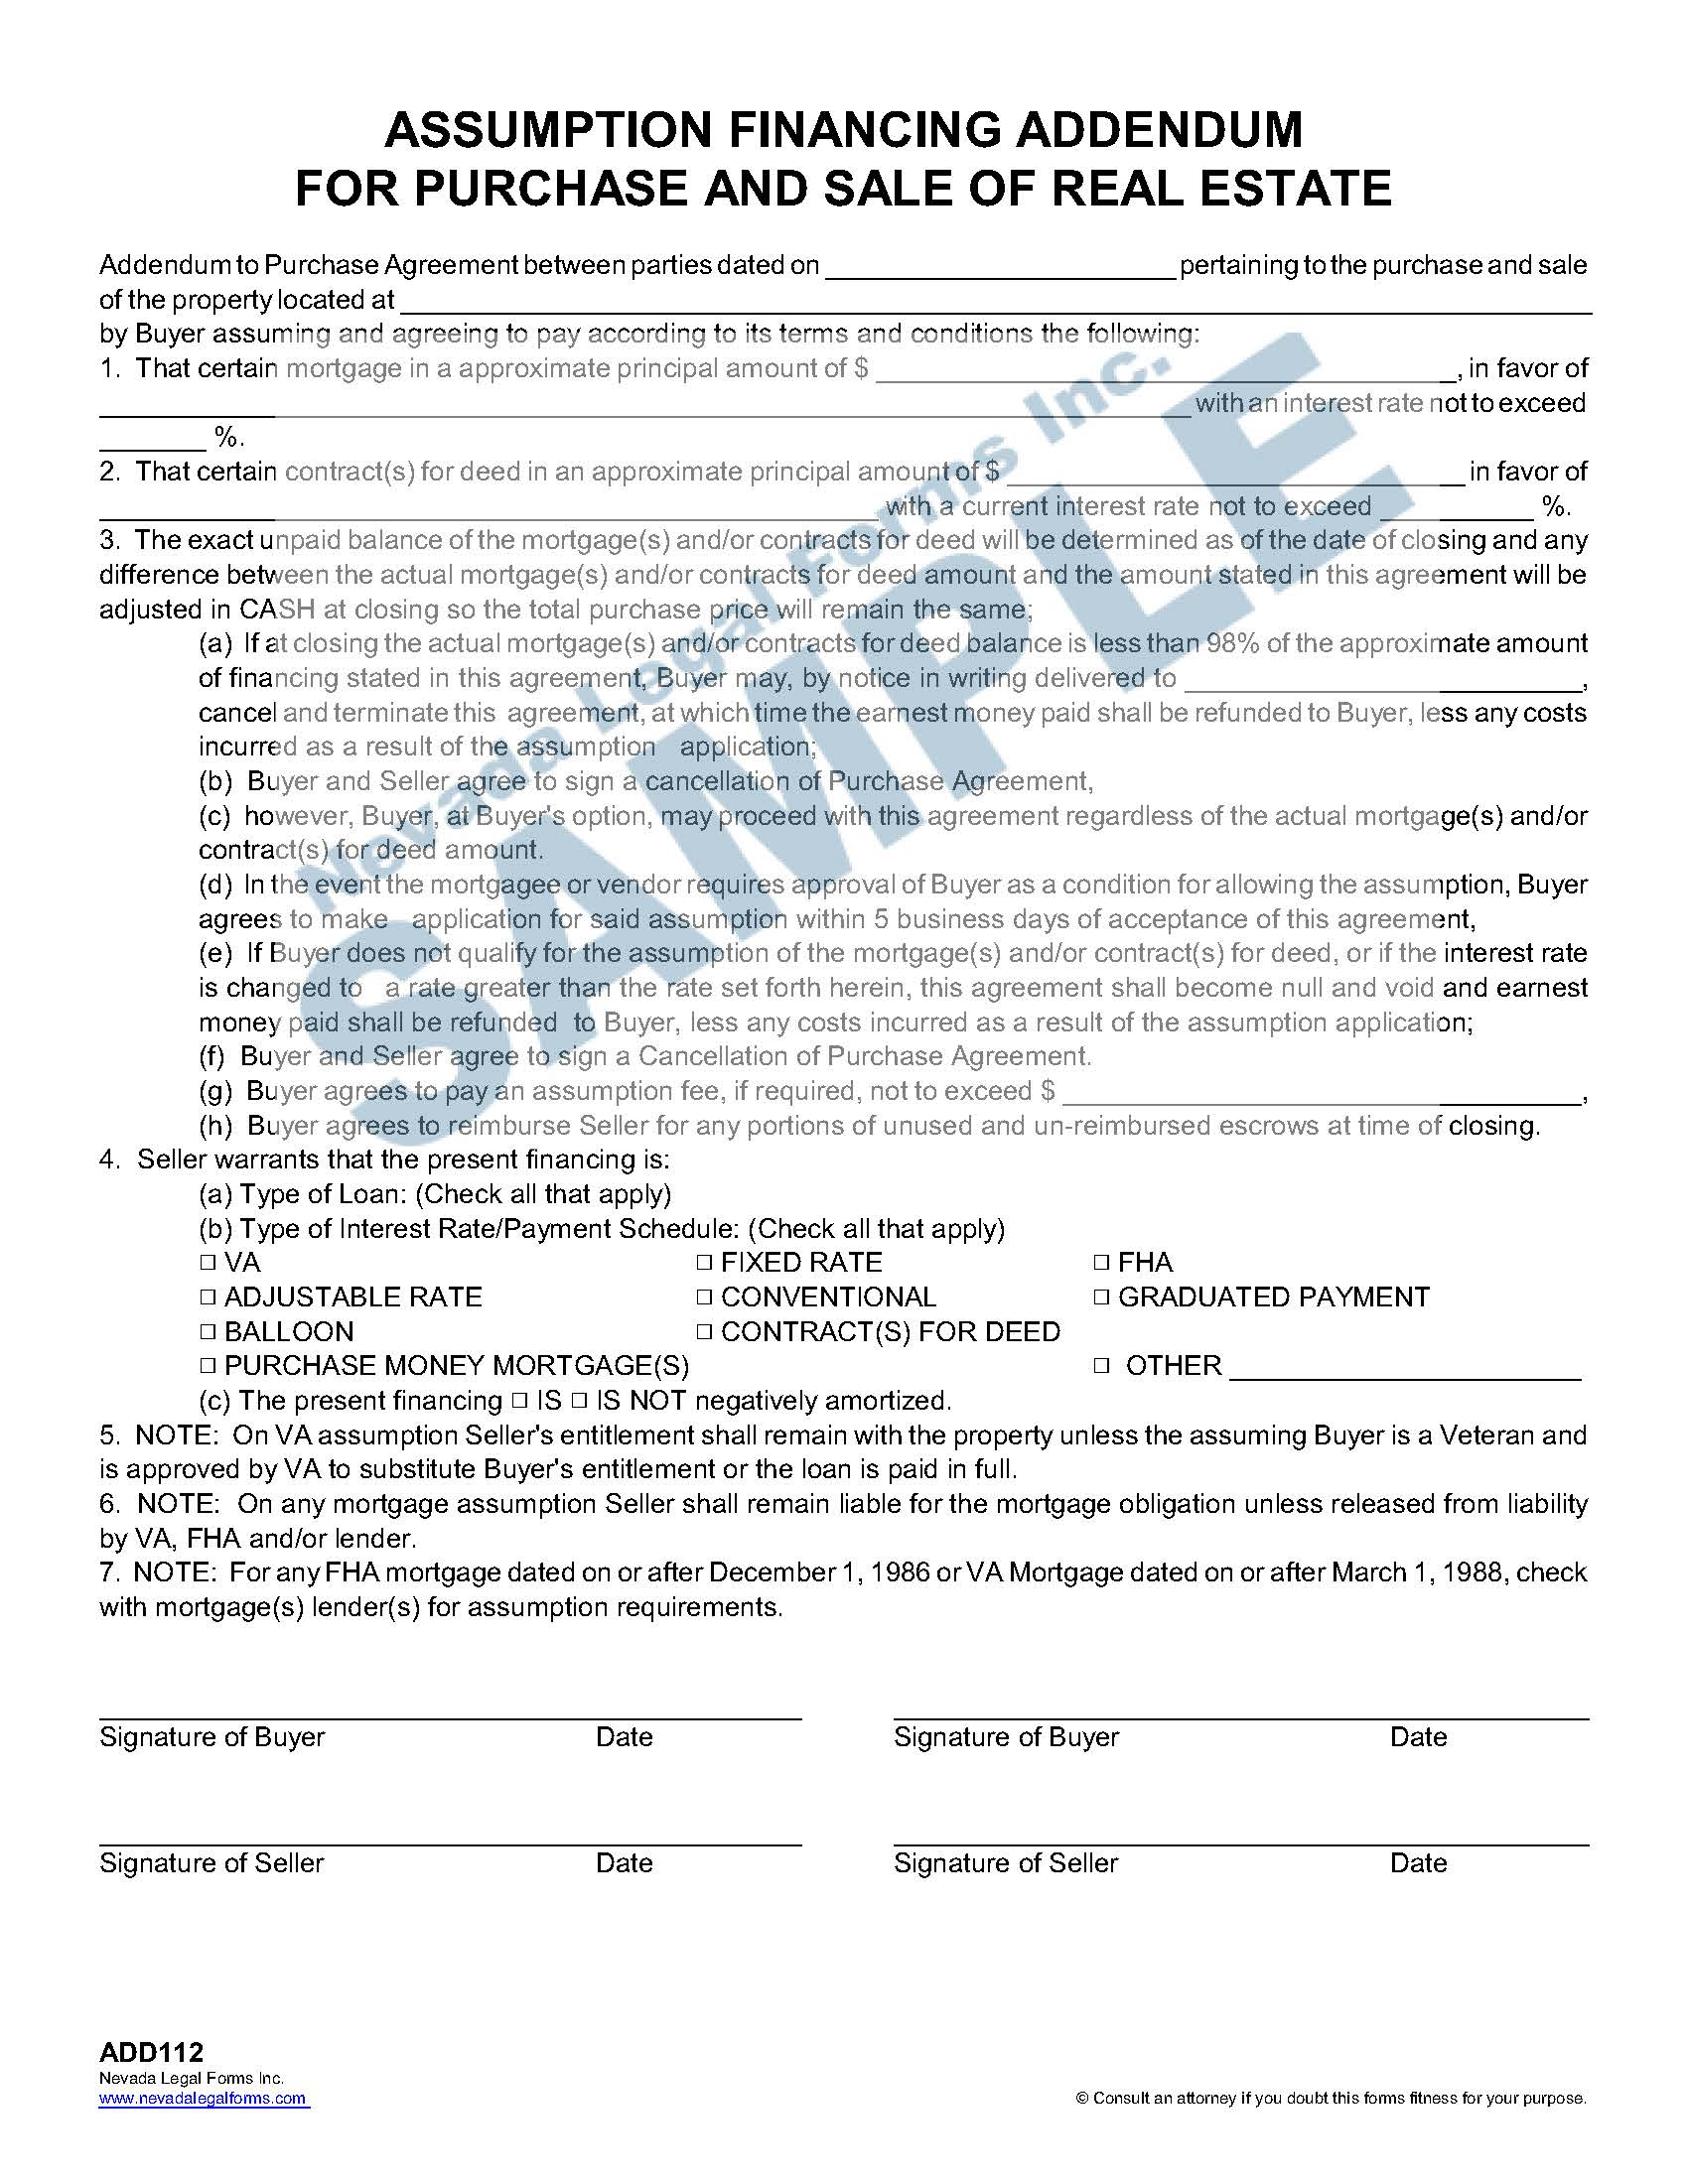 Assumption Financing Addendum For Purchase And Sale Of